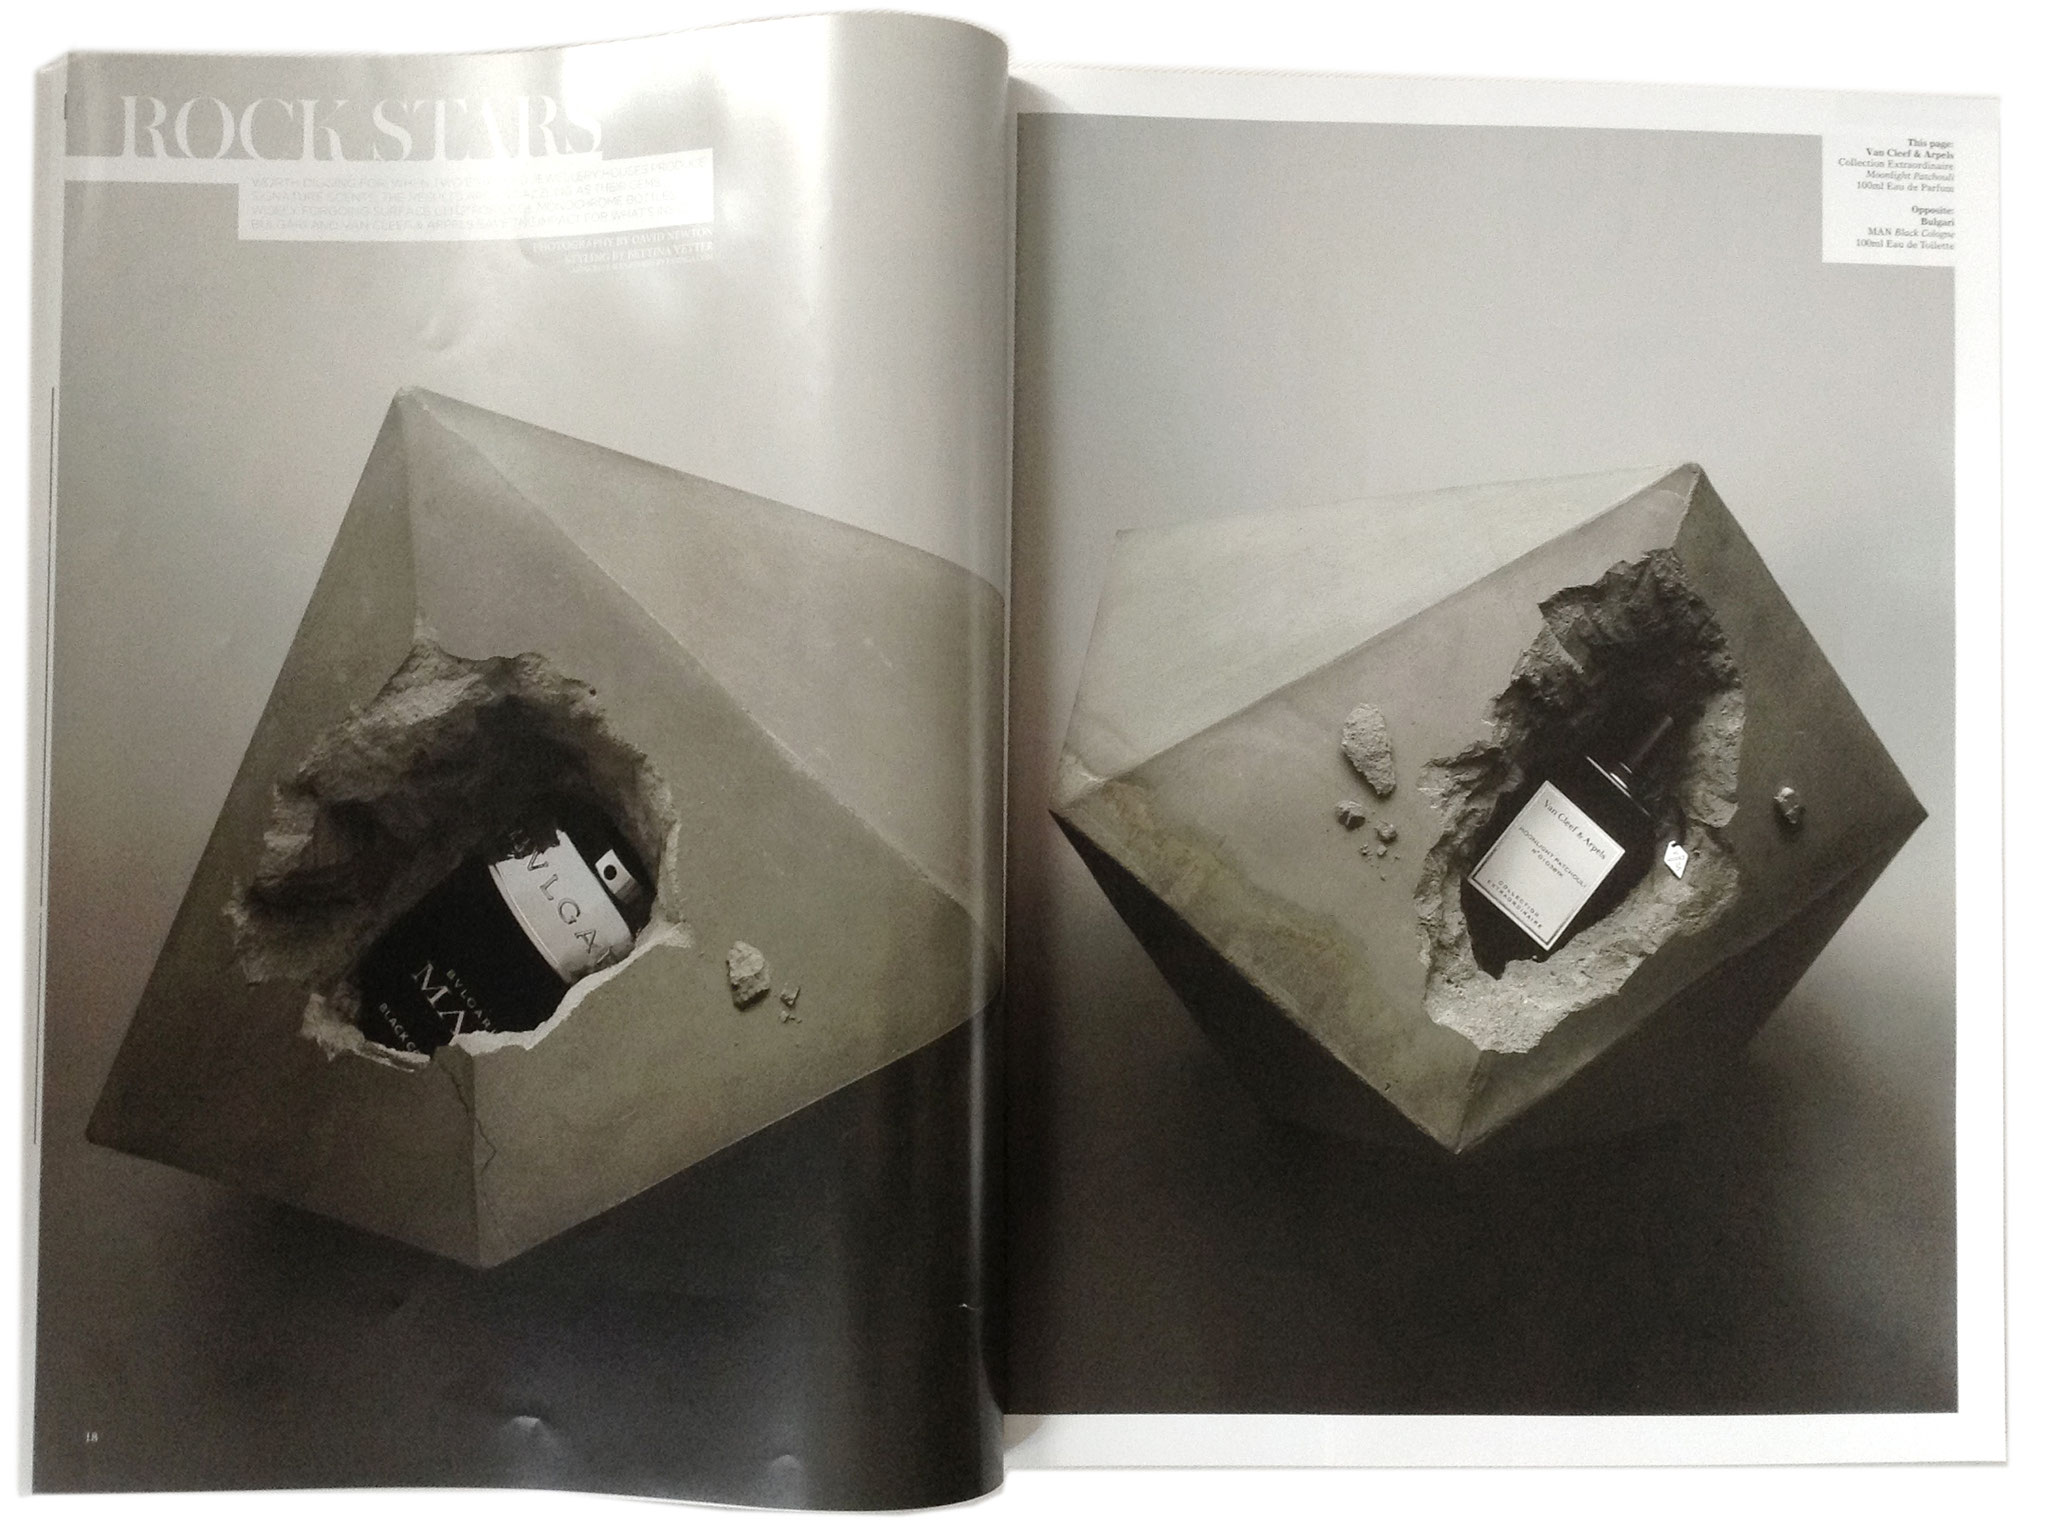 PASiNGA Concrete Sculptures Wylde Magazine Issue 10